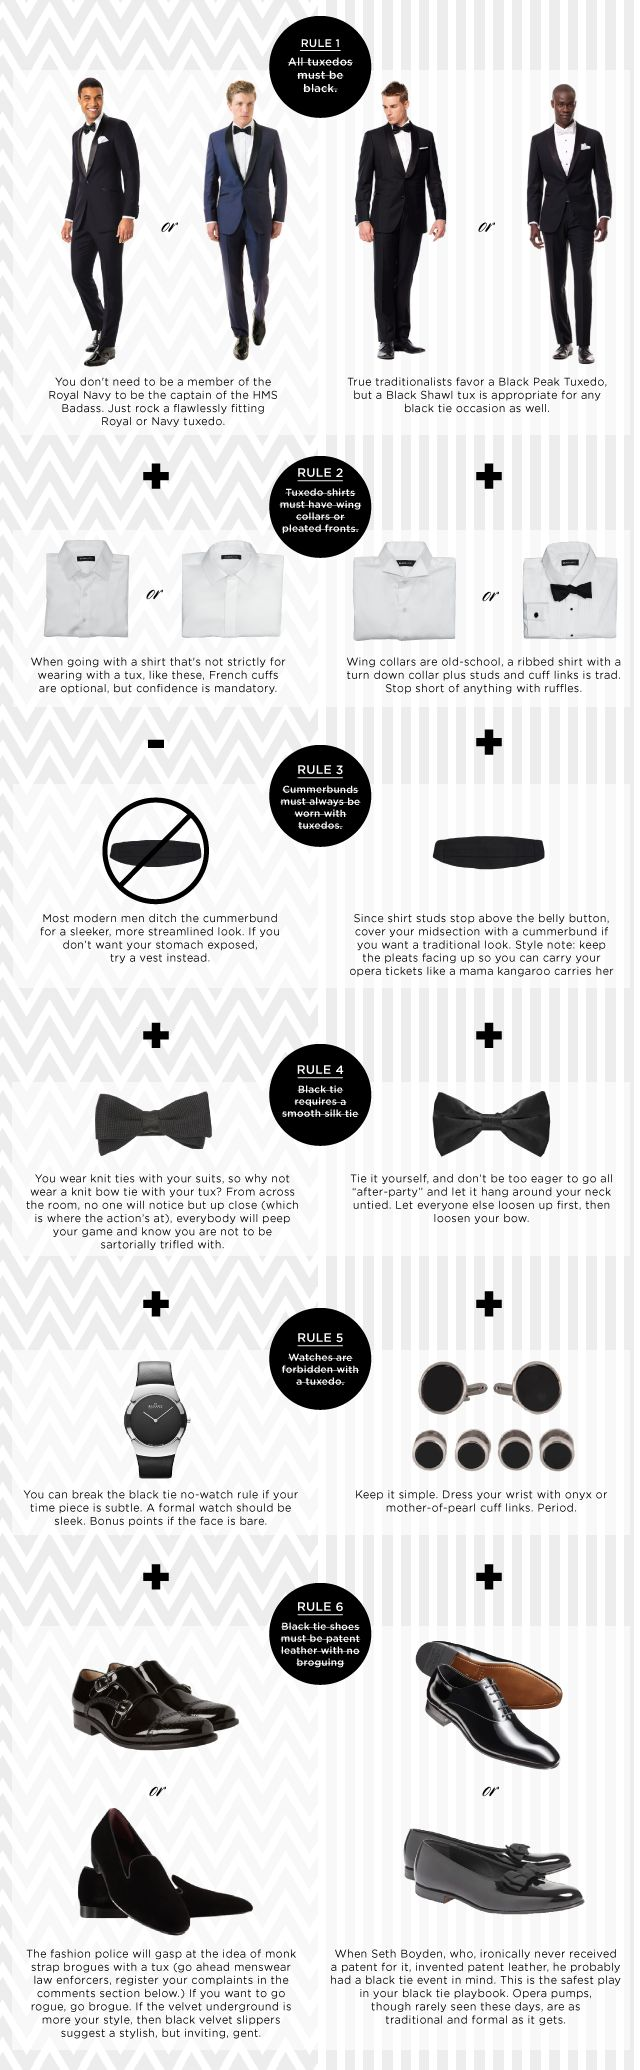 A guide to breaking all the black tie rules, in style.